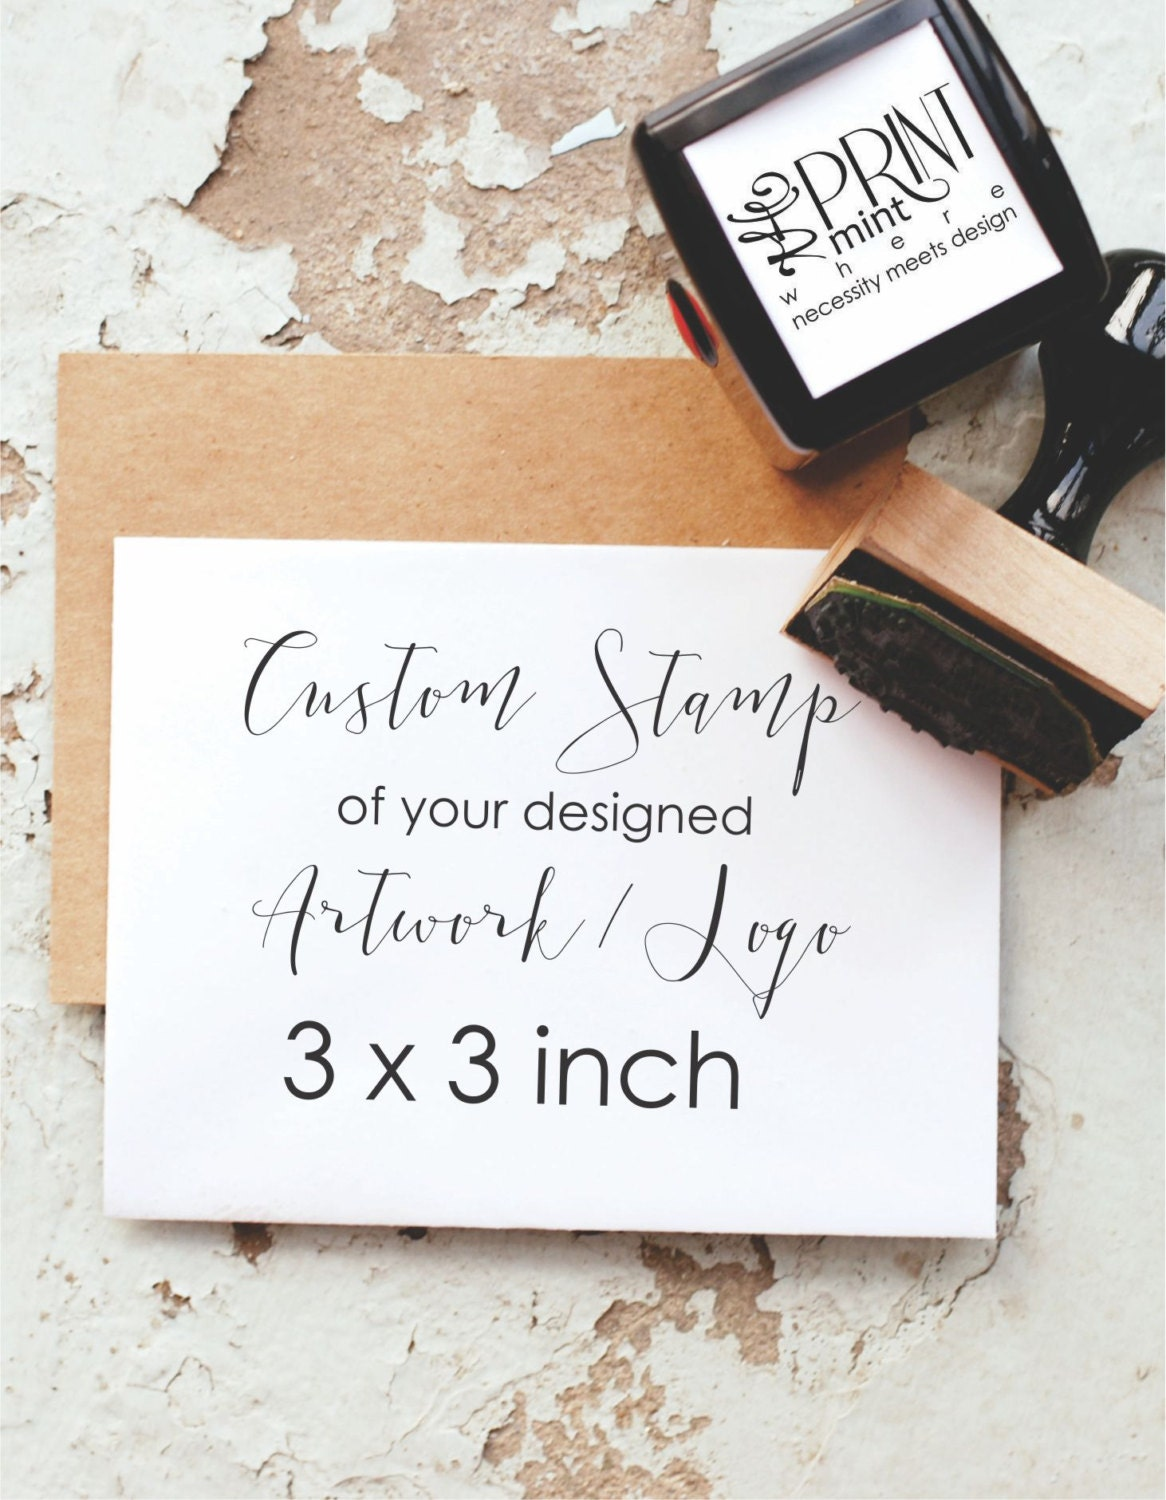 Custom Stamp 3x3 Inches 3 Inch Custom Logo Stamp Business